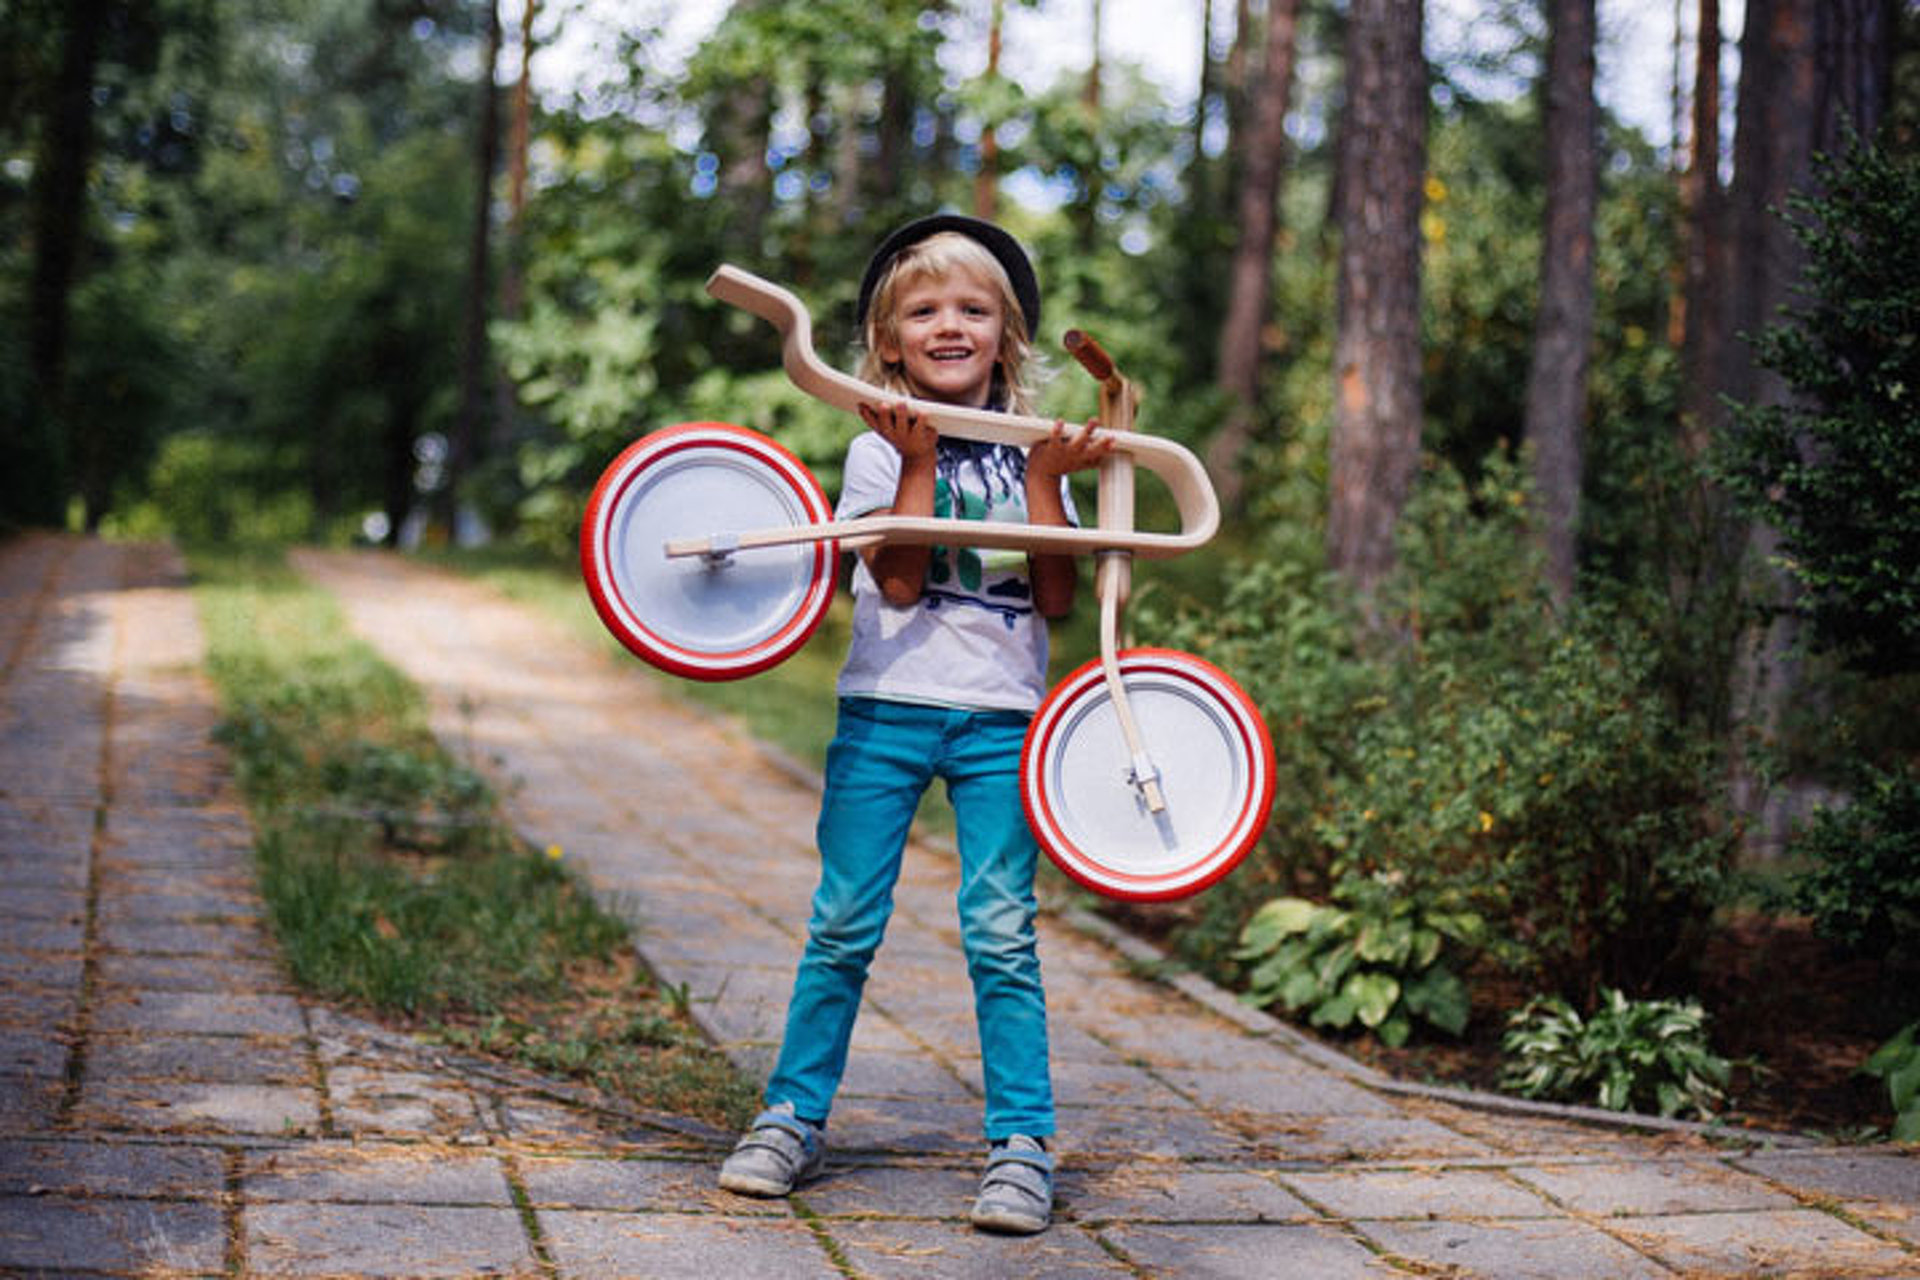 The Brum Brum Bike is the Cool Two-Wheeler for Little Adventurers